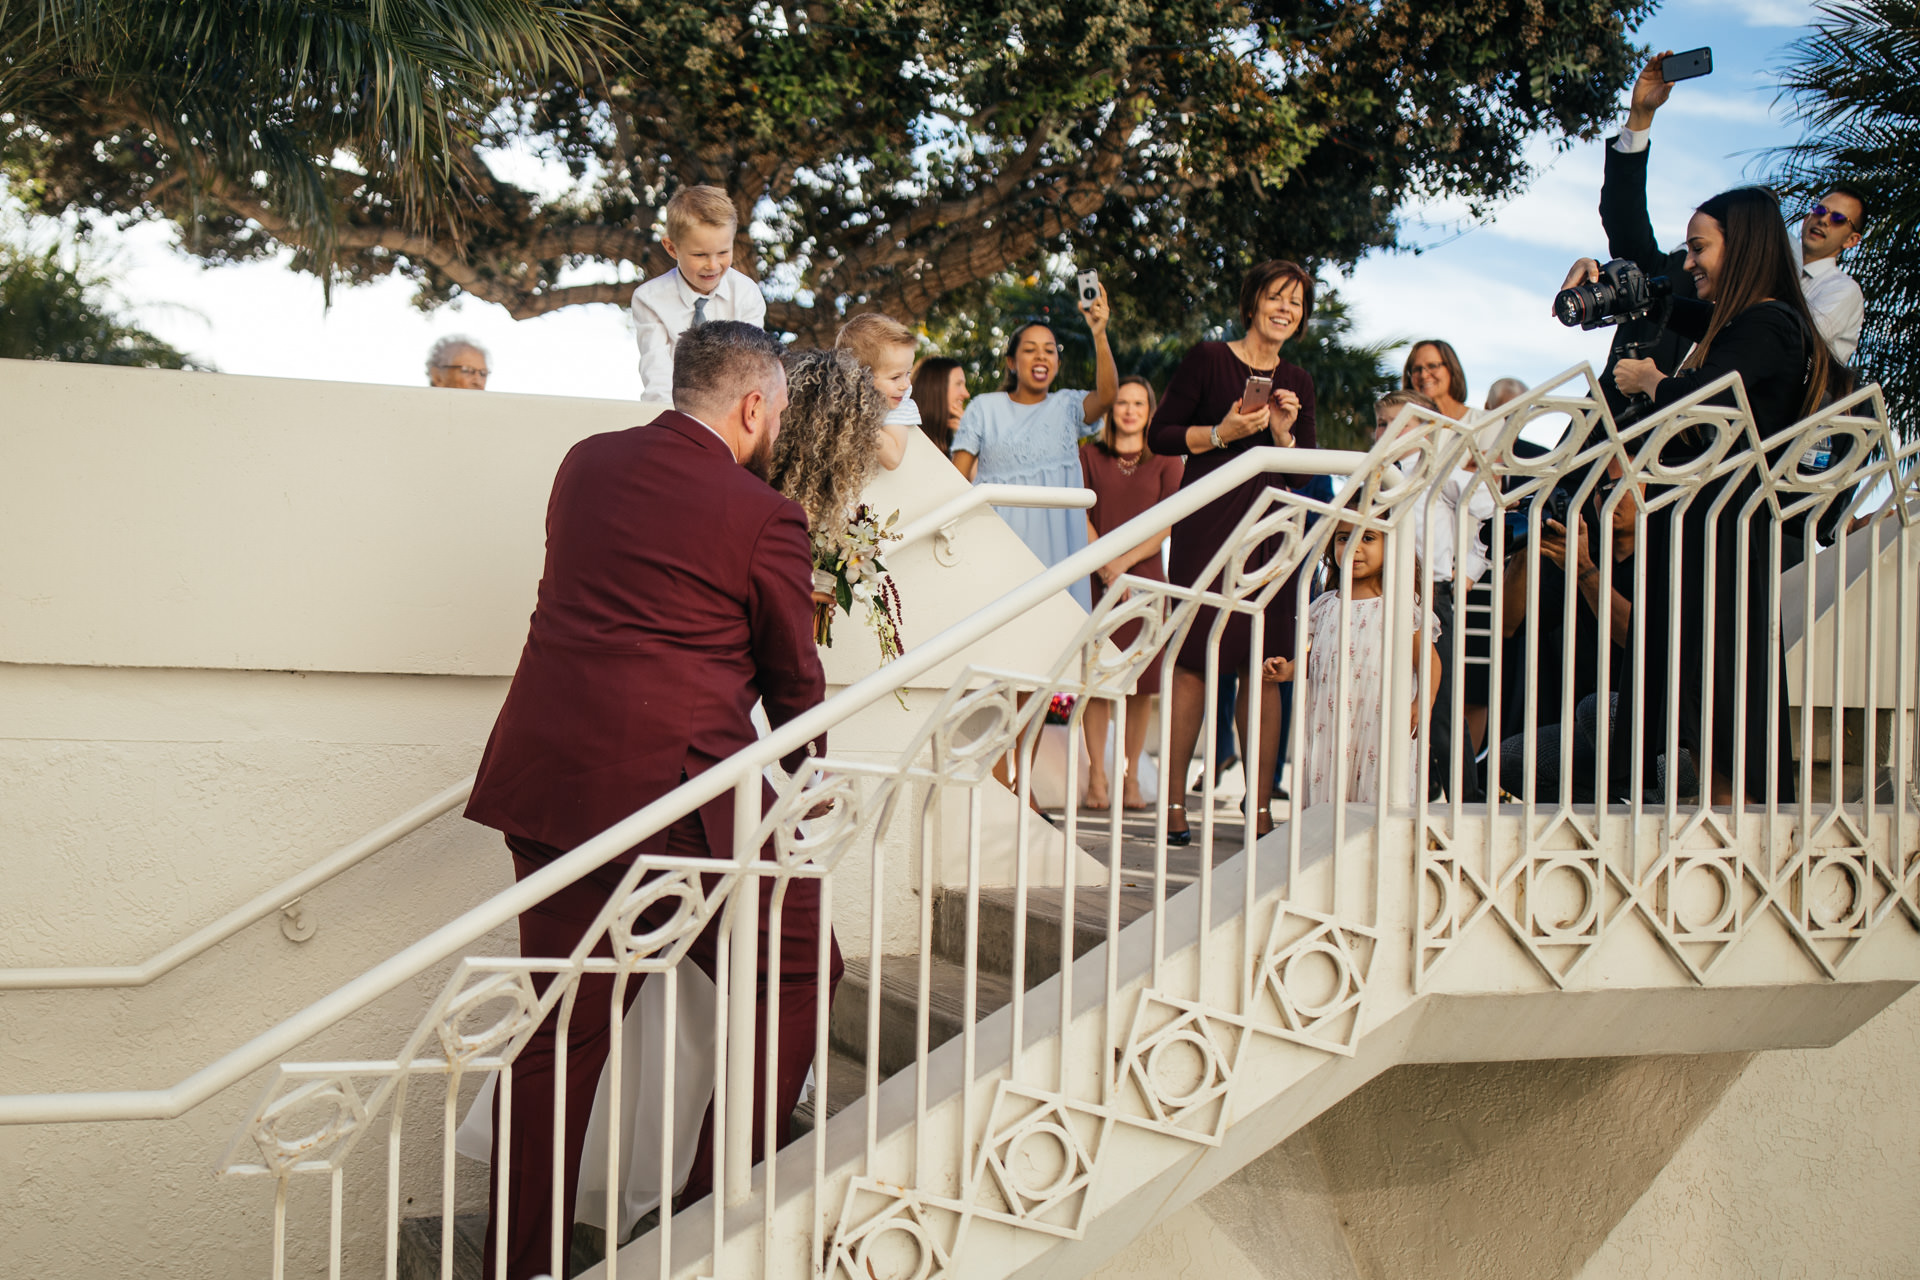 Gerusa Eric La Jolla San Diego Temple Wedding by Faces Photography